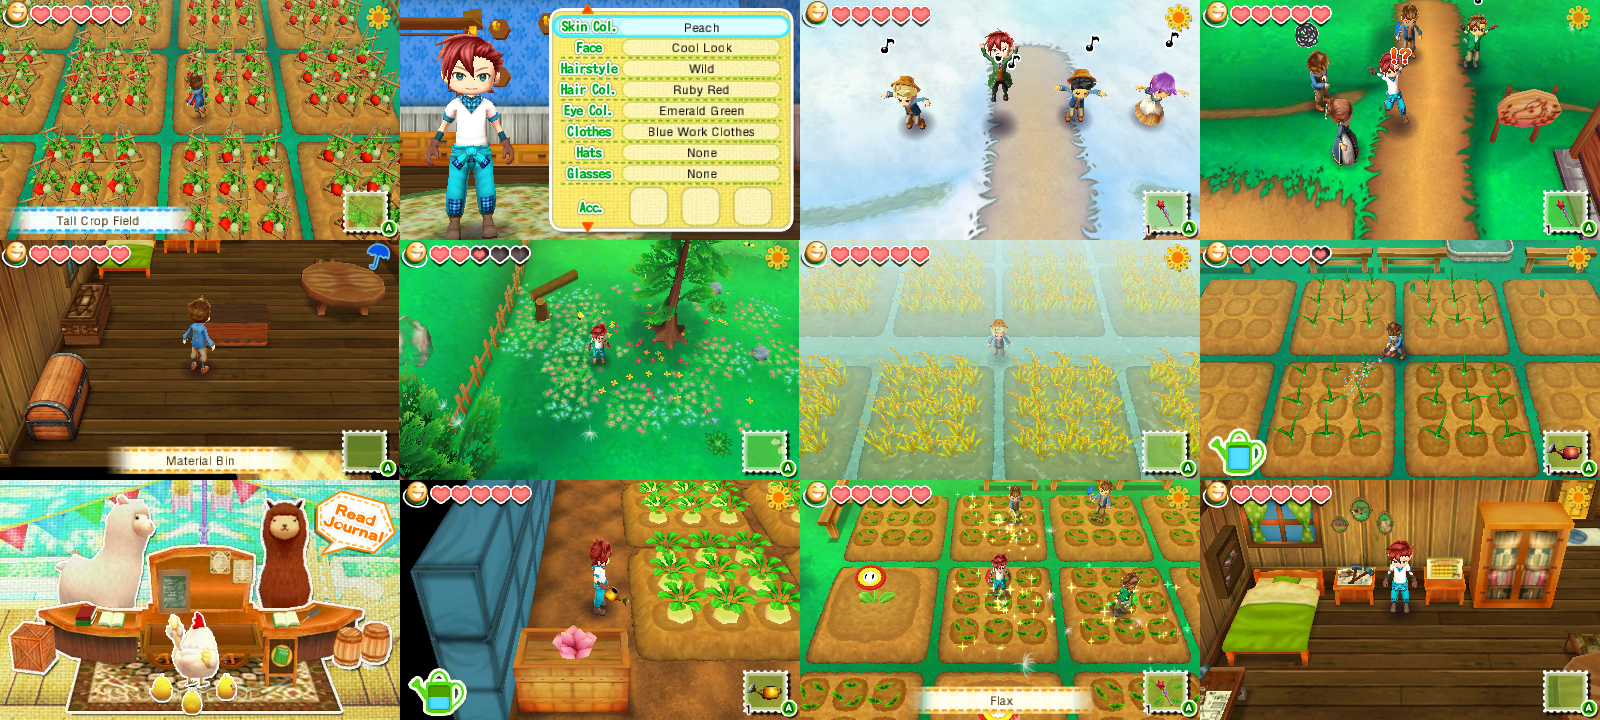 New story of seasons trailer amp screens released